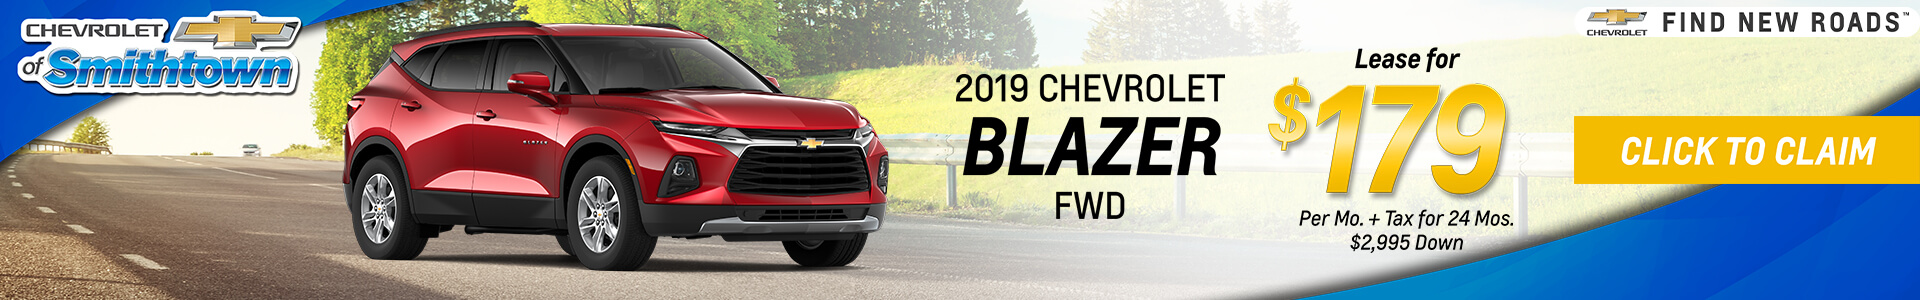 Chevrolet Blazer $179 Lease